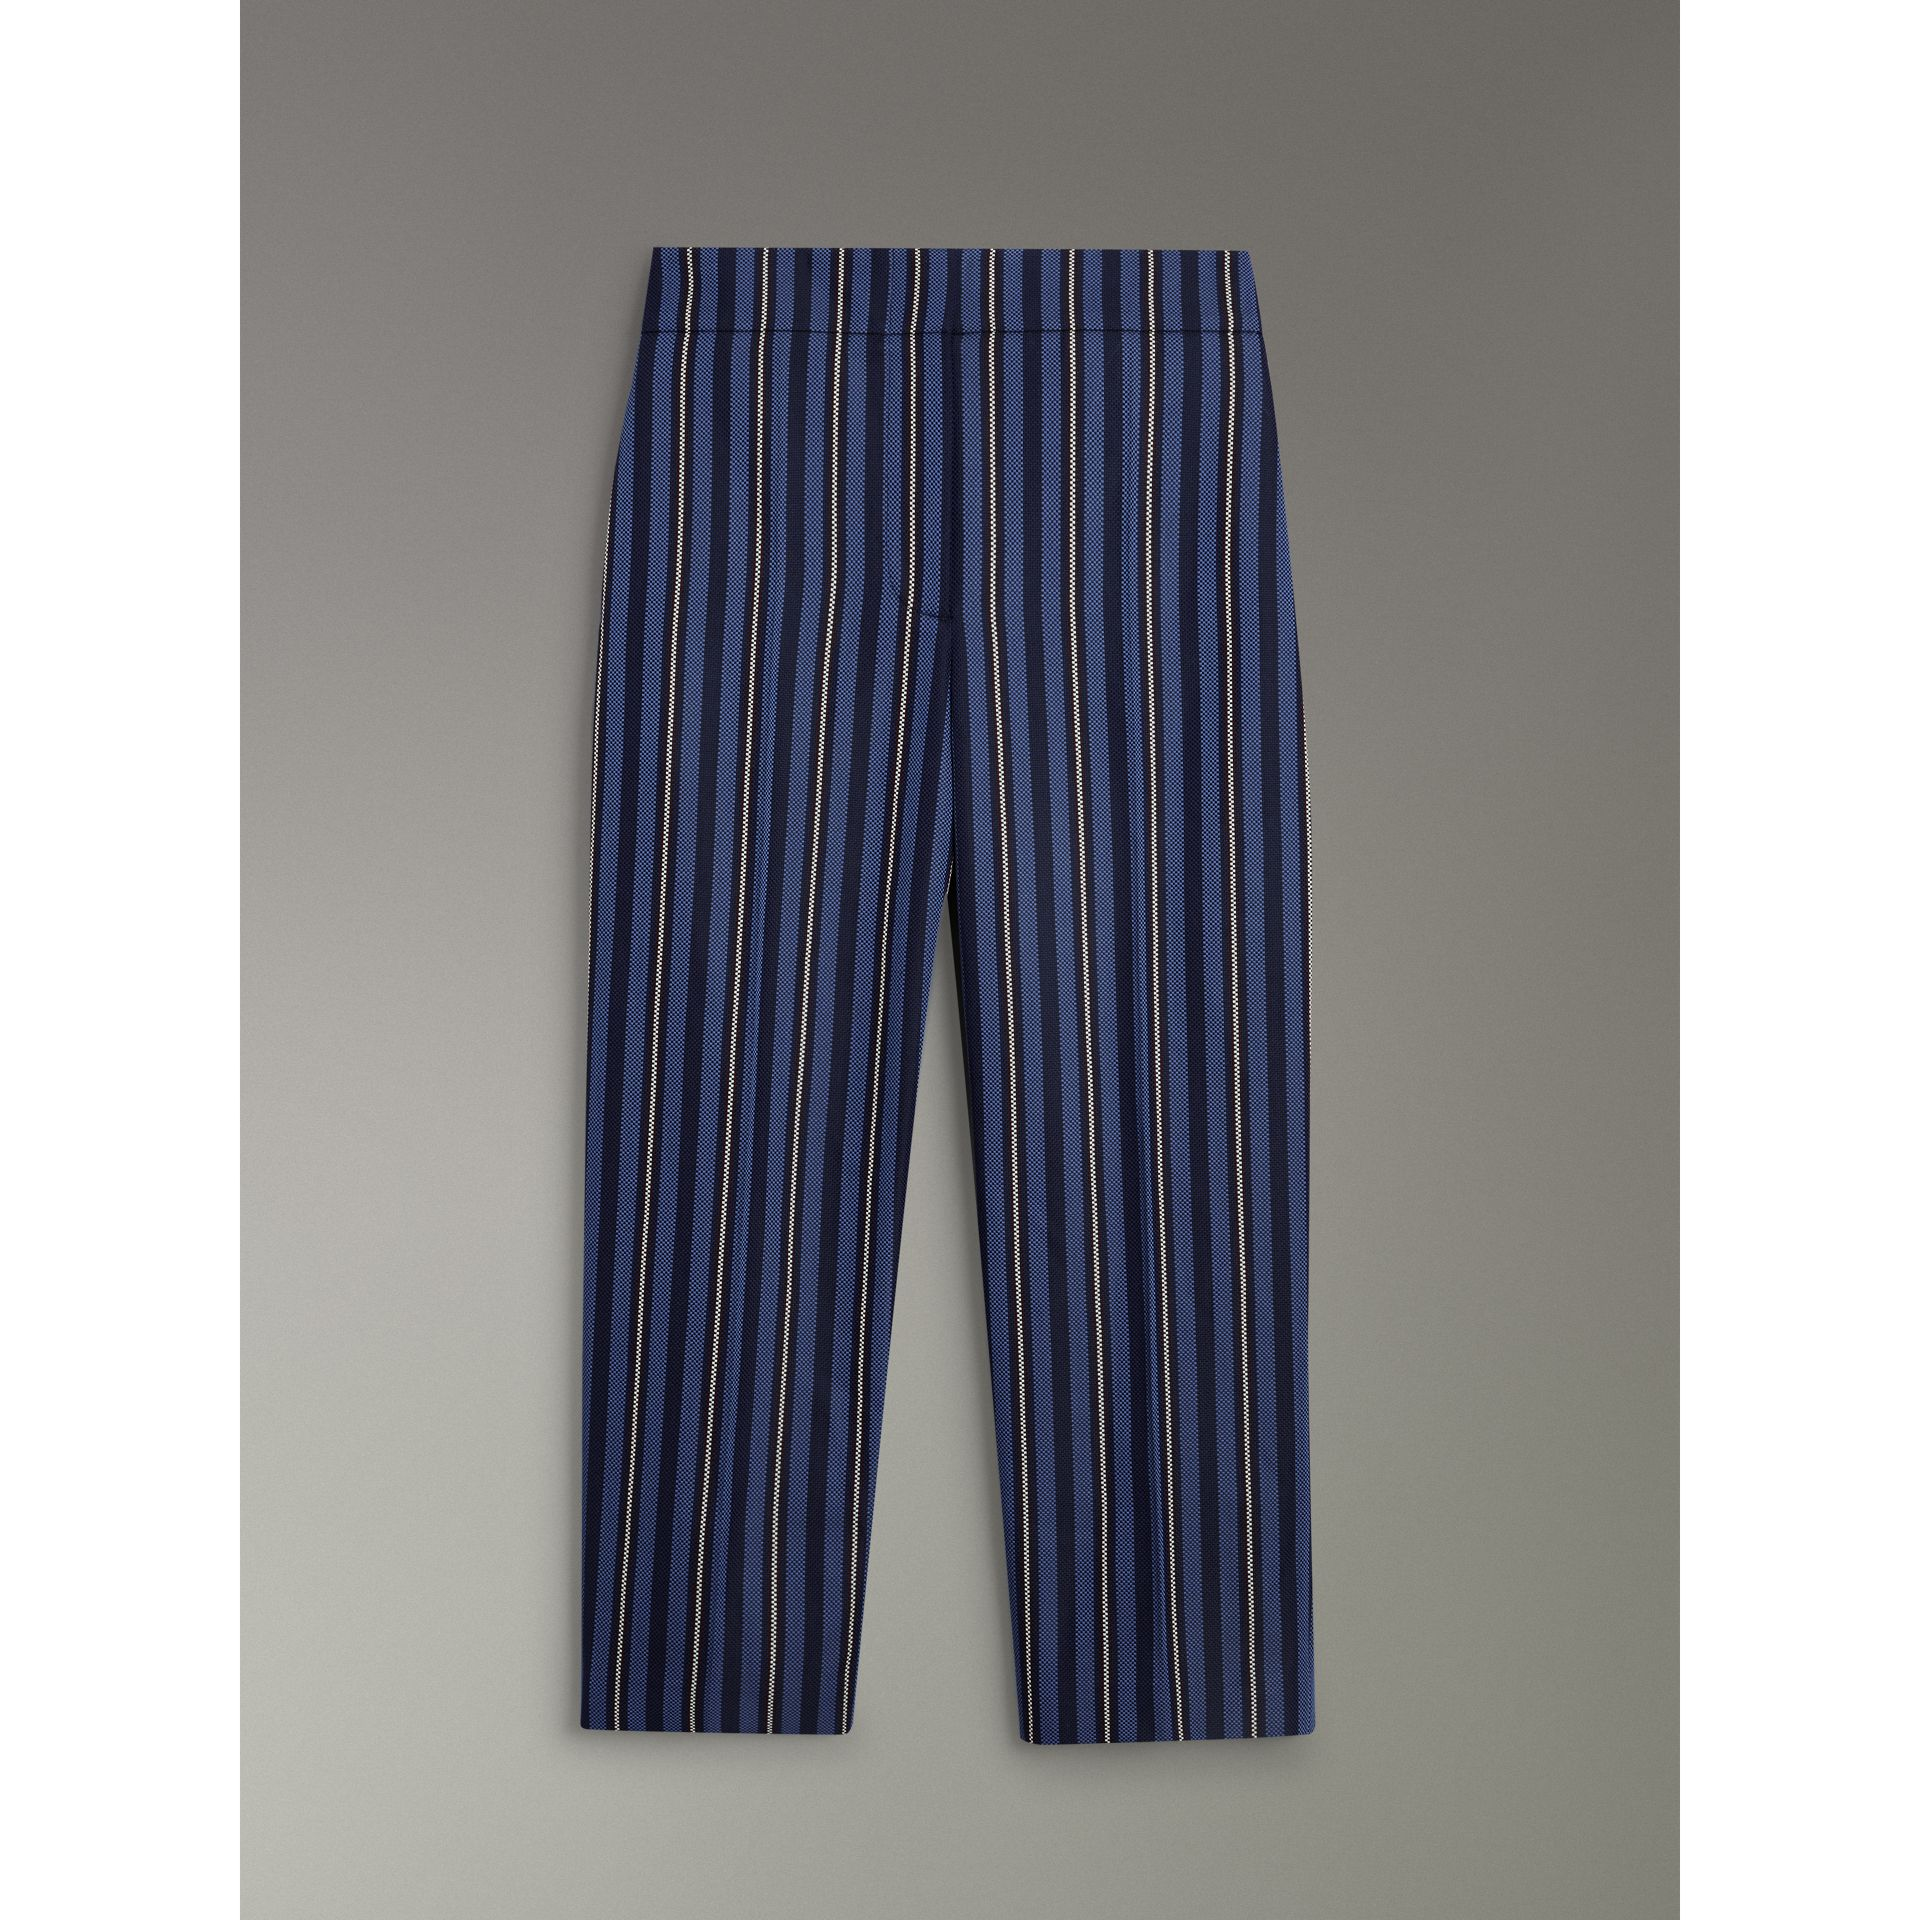 Striped Wool Blend Cropped Trousers in Navy/light Blue - Women | Burberry United States - gallery image 3